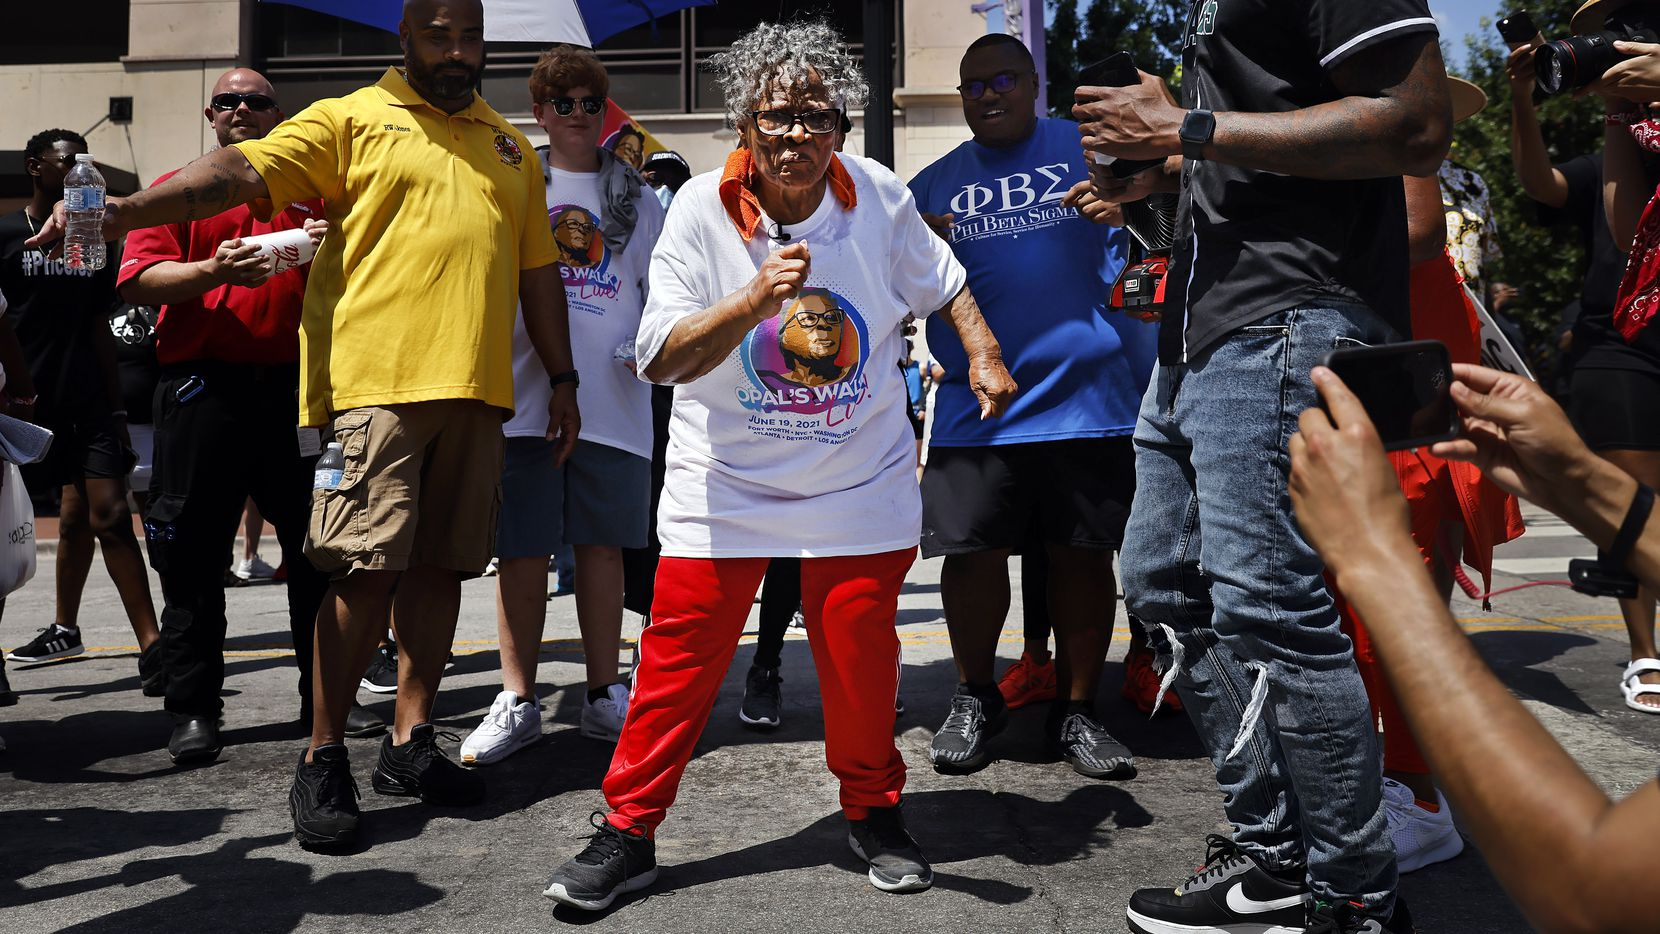 During her walk through downtown Fort Worth, Opal Lee (center) stopped in the middle of Commerce St. and danced to a live music performance for her, Saturday morning, June 19, 2021. For the first time since her dream of Juneteenth being made a national holiday became reality, Ms. Opal Lee led a 2.5 mile caravan from Historic Southside to the Tarrant County Courthouse in downtown Fort Worth. Earlier this week, the civil rights icon stood by President Joe Biden as he signed a law making Juneteenth a federal holiday. At 94 years old, Ms. Opal Lee marked Juneteenth by speaking with supporters at the historic courthouse after cooling down from the hot walk. (Tom Fox/The Dallas Morning News)